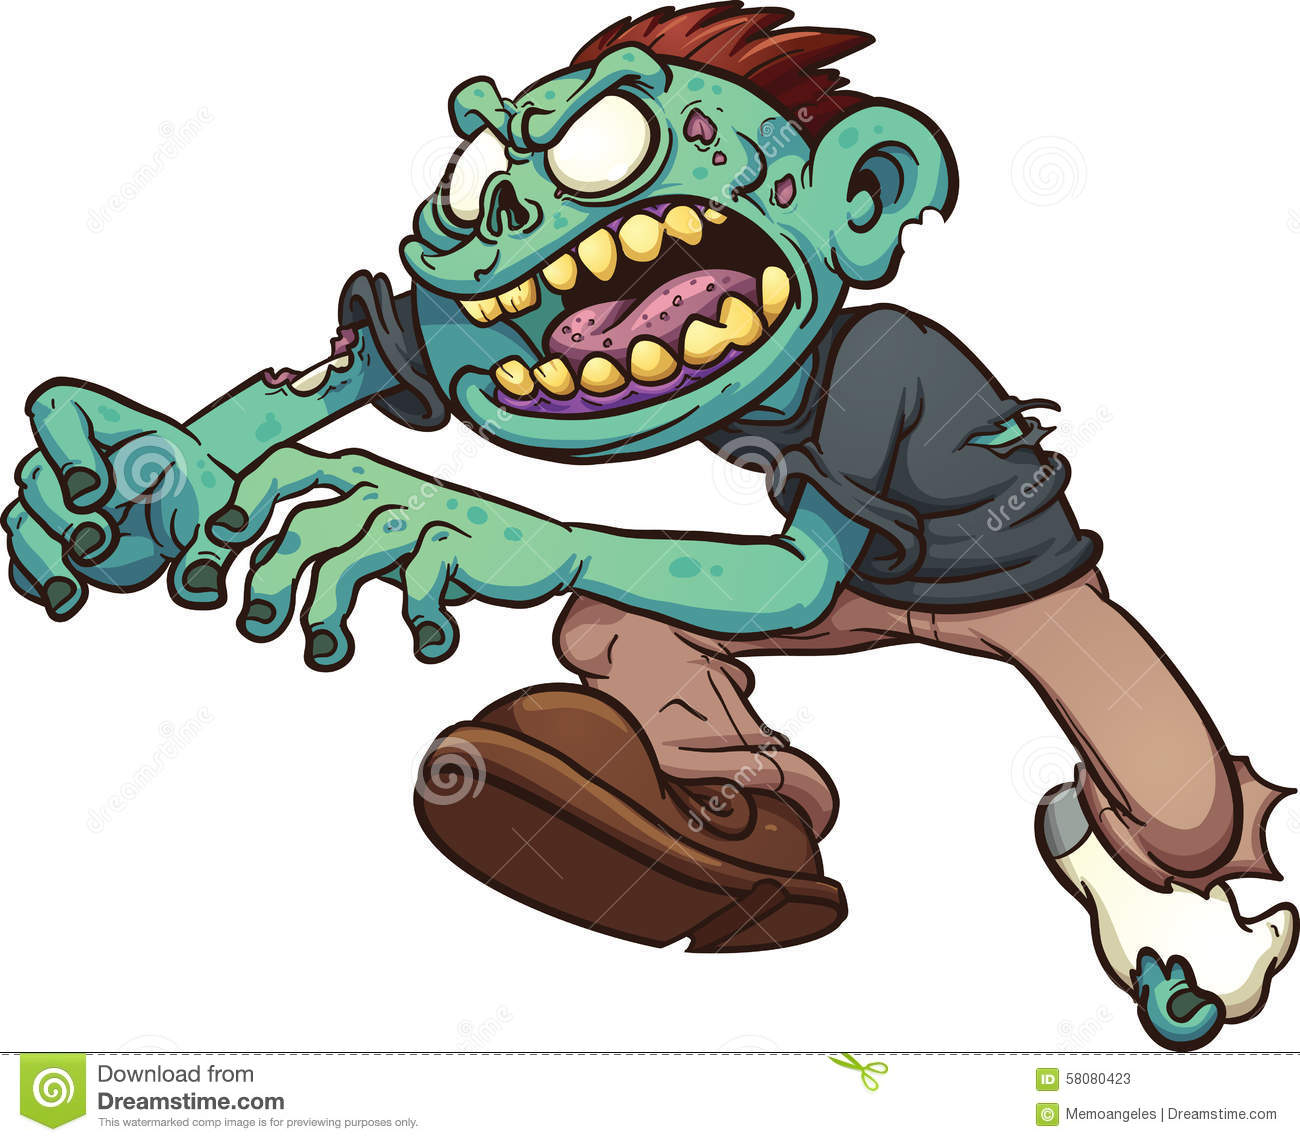 Cartoon zombie running stock vector. Illustration of angry.